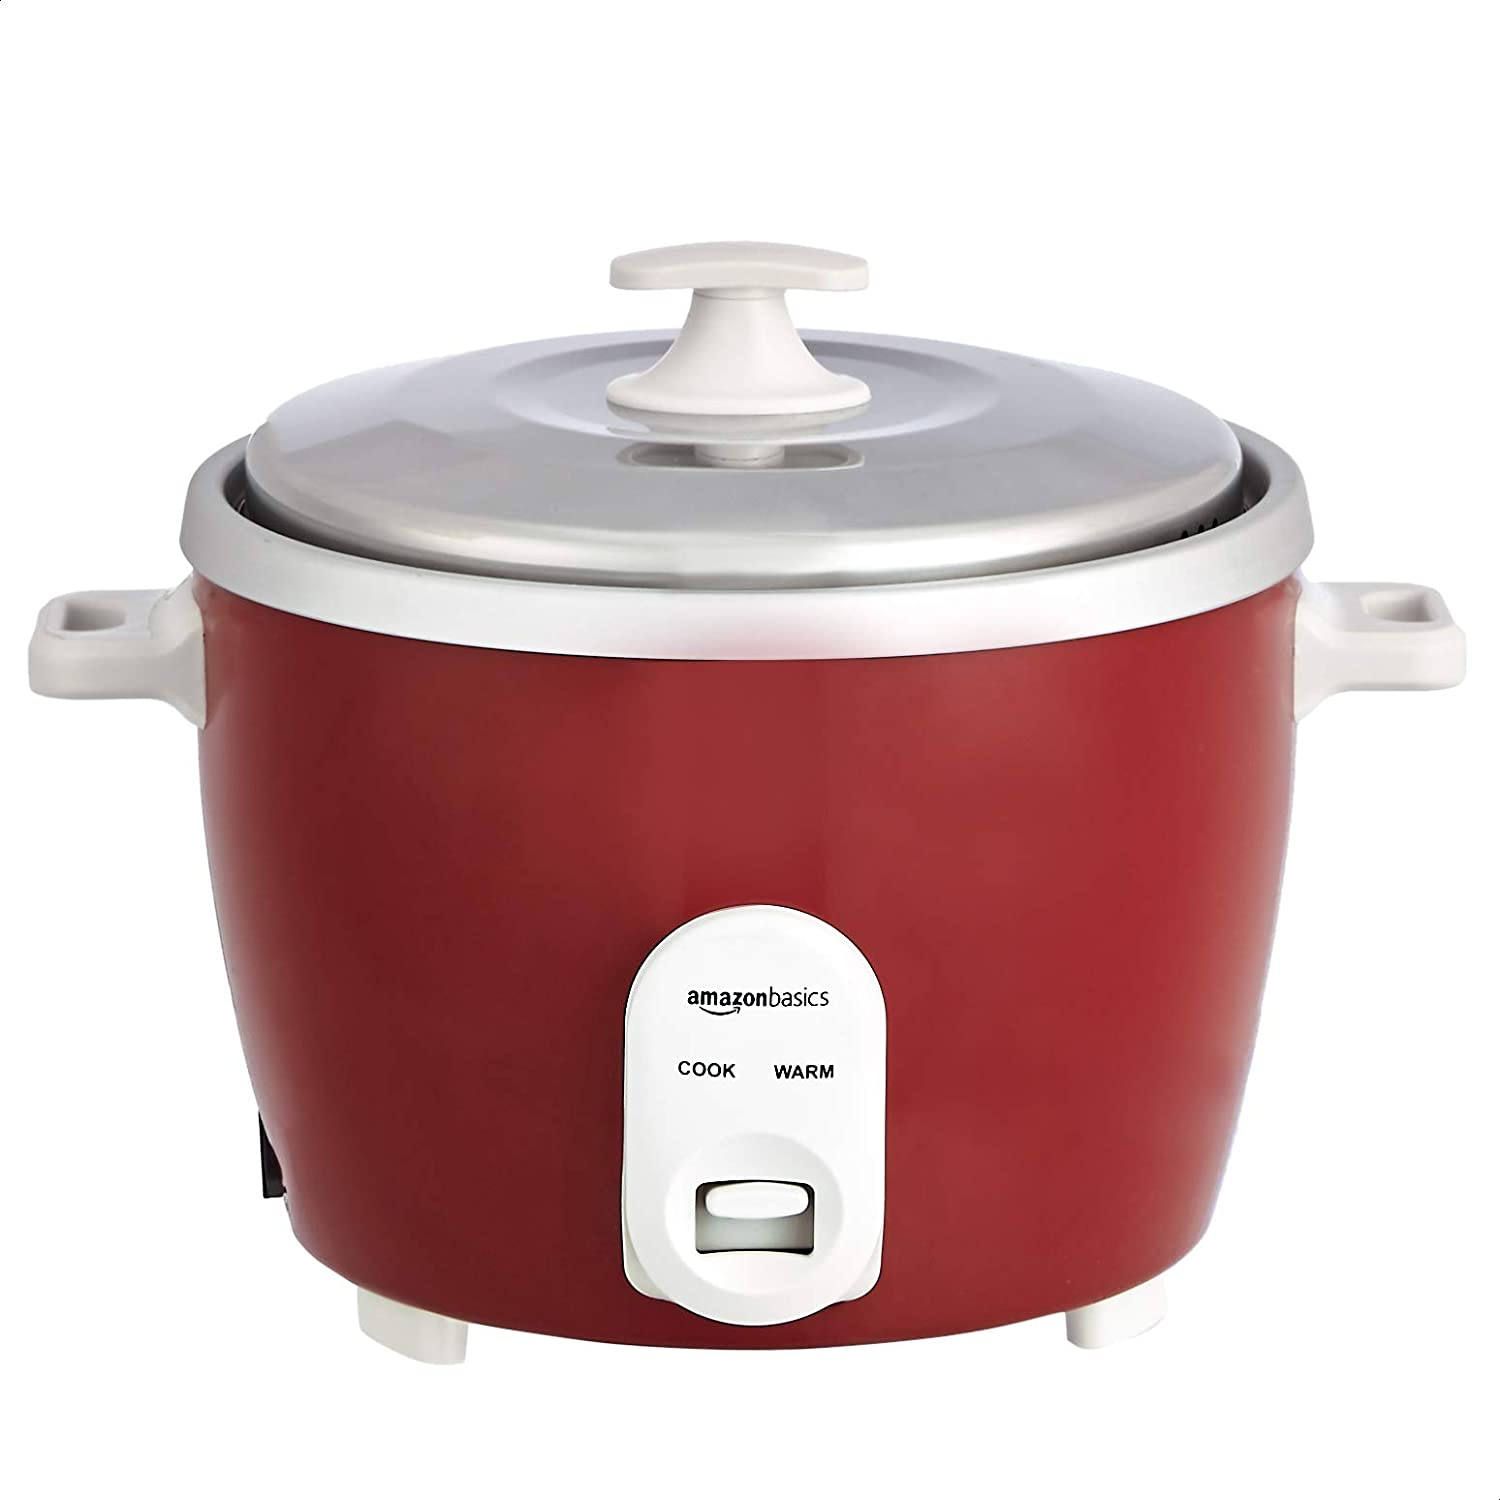 AmazonBasics Electric Rice Cooker 1 L (500 W) with Aluminum Pan, Measuring Cup and Scoop - Maroon